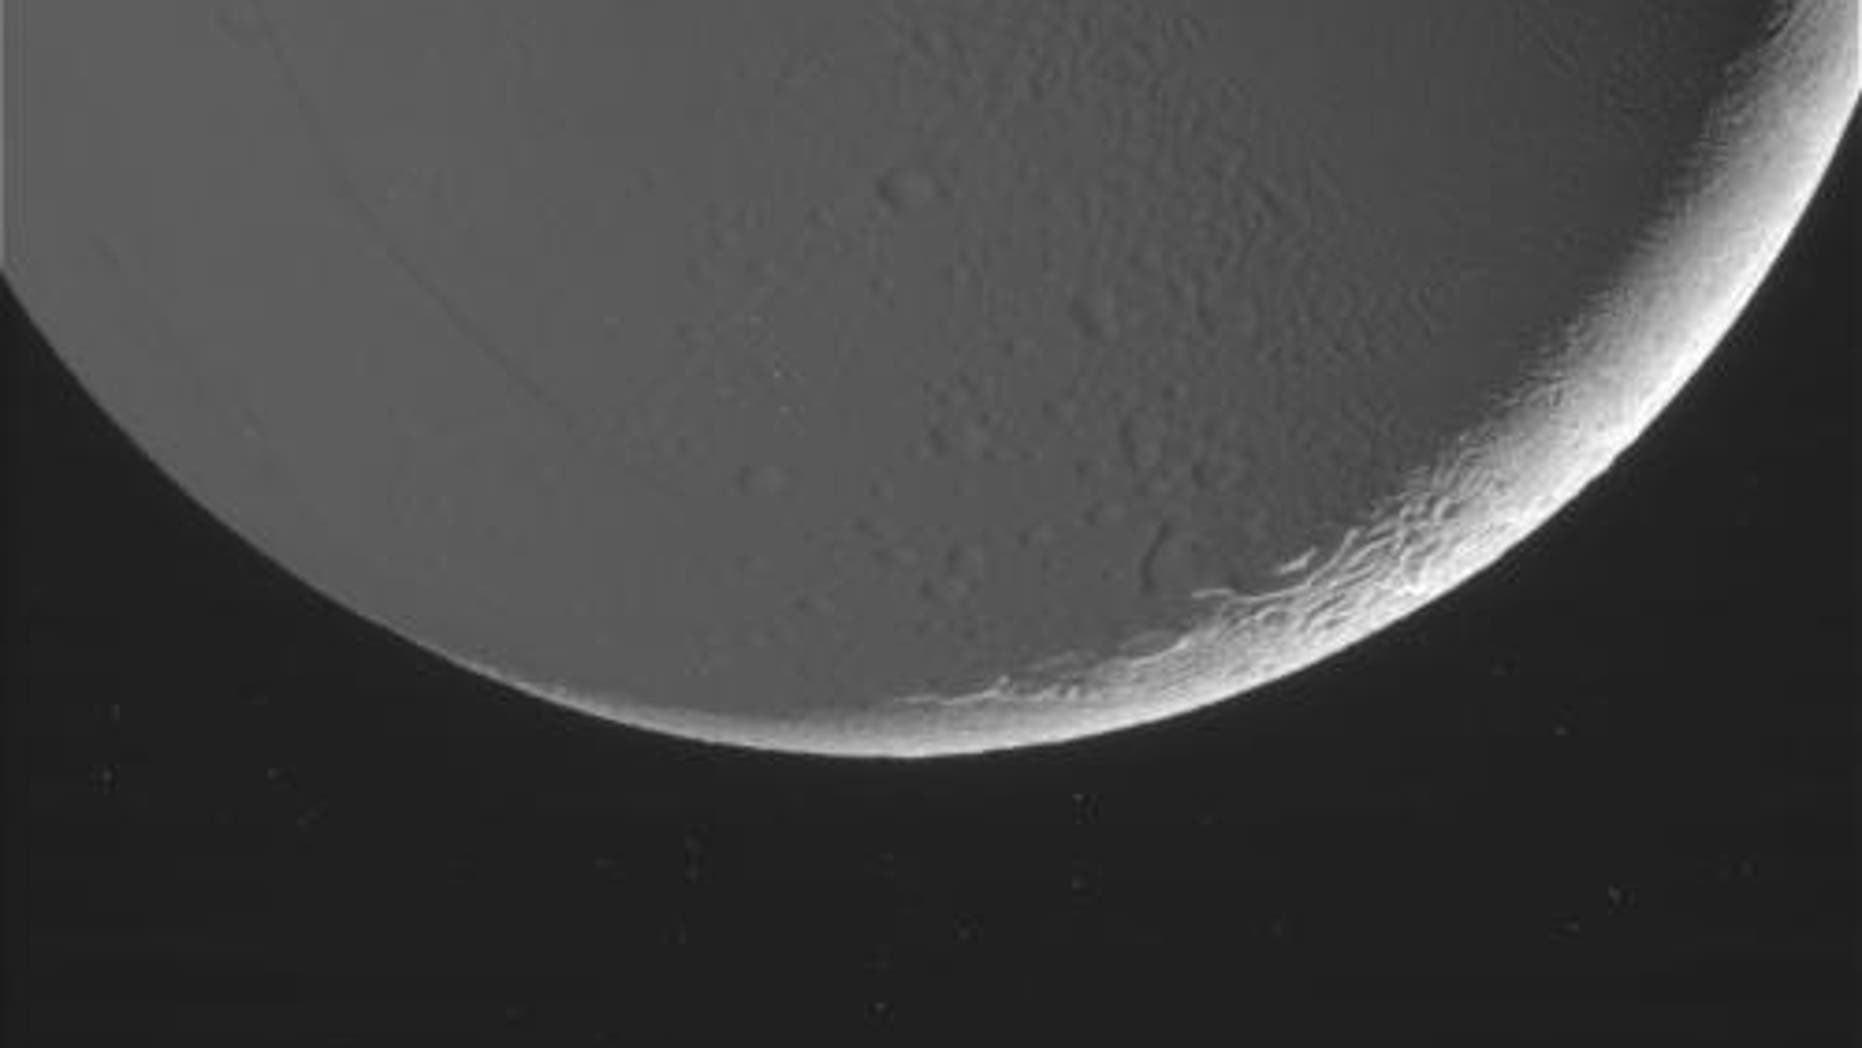 Image of Enceladus taken on Oct. 14, 2015 and received on Earth Oct. 15, 2015. (Image Credit: NASA/JPL-Caltech/Space Science Institute)